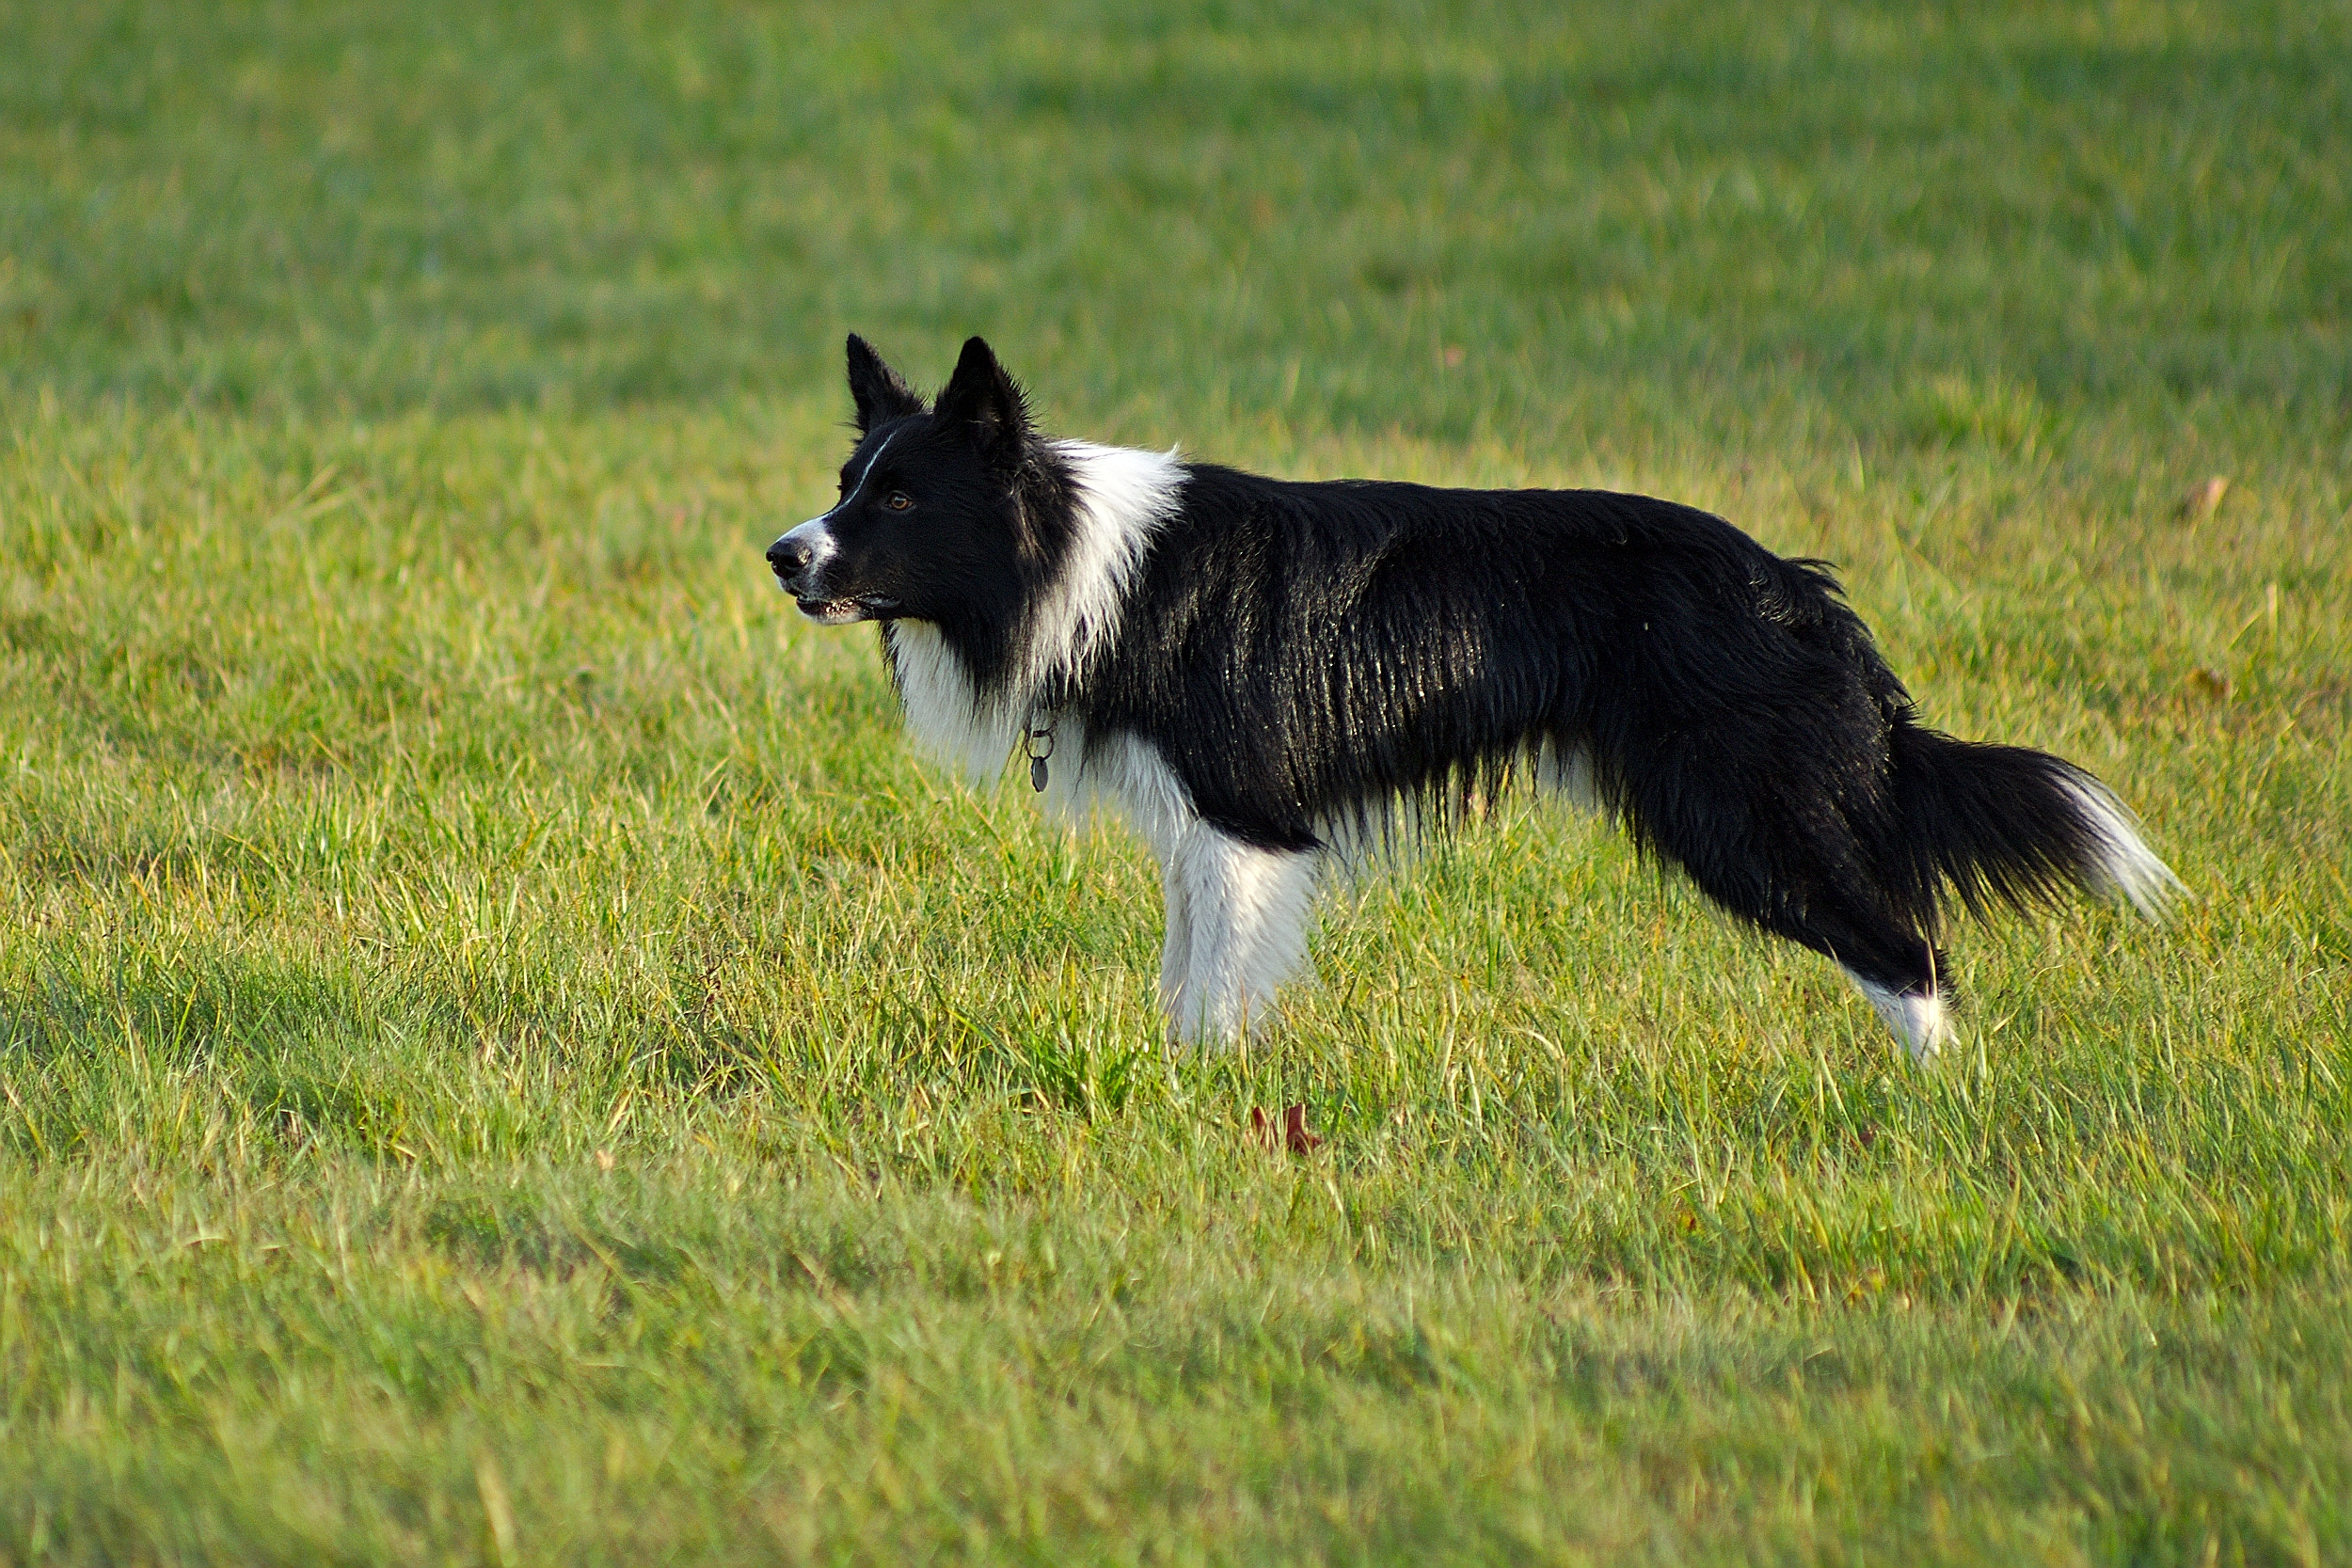 Farm Dogs Dumped As Farmers in Drought Look to Cut Costs